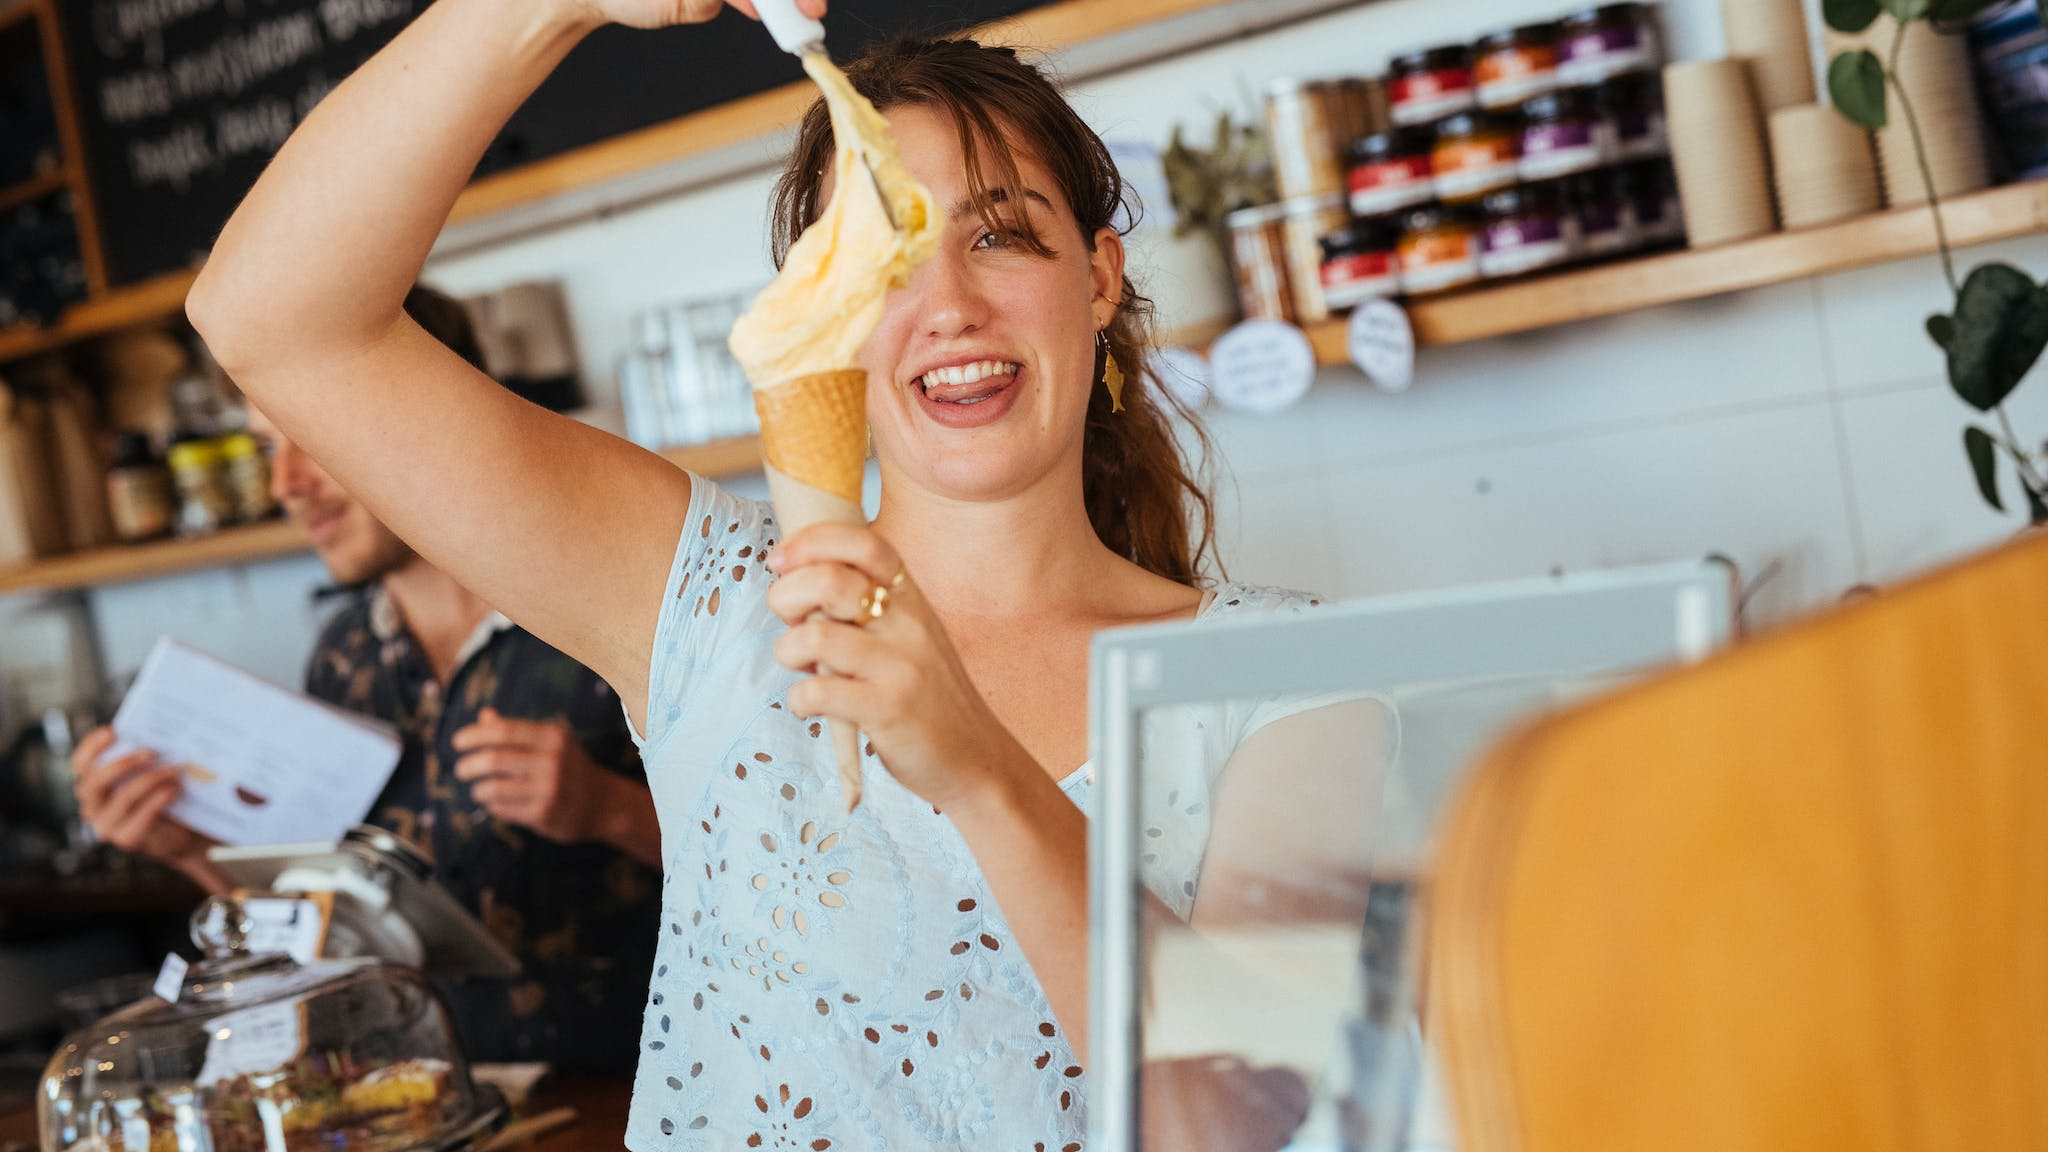 Cup, cone, milkshake, frappe or creamy Iced Coffee or Iced Chocolate - delicious fresh gelato